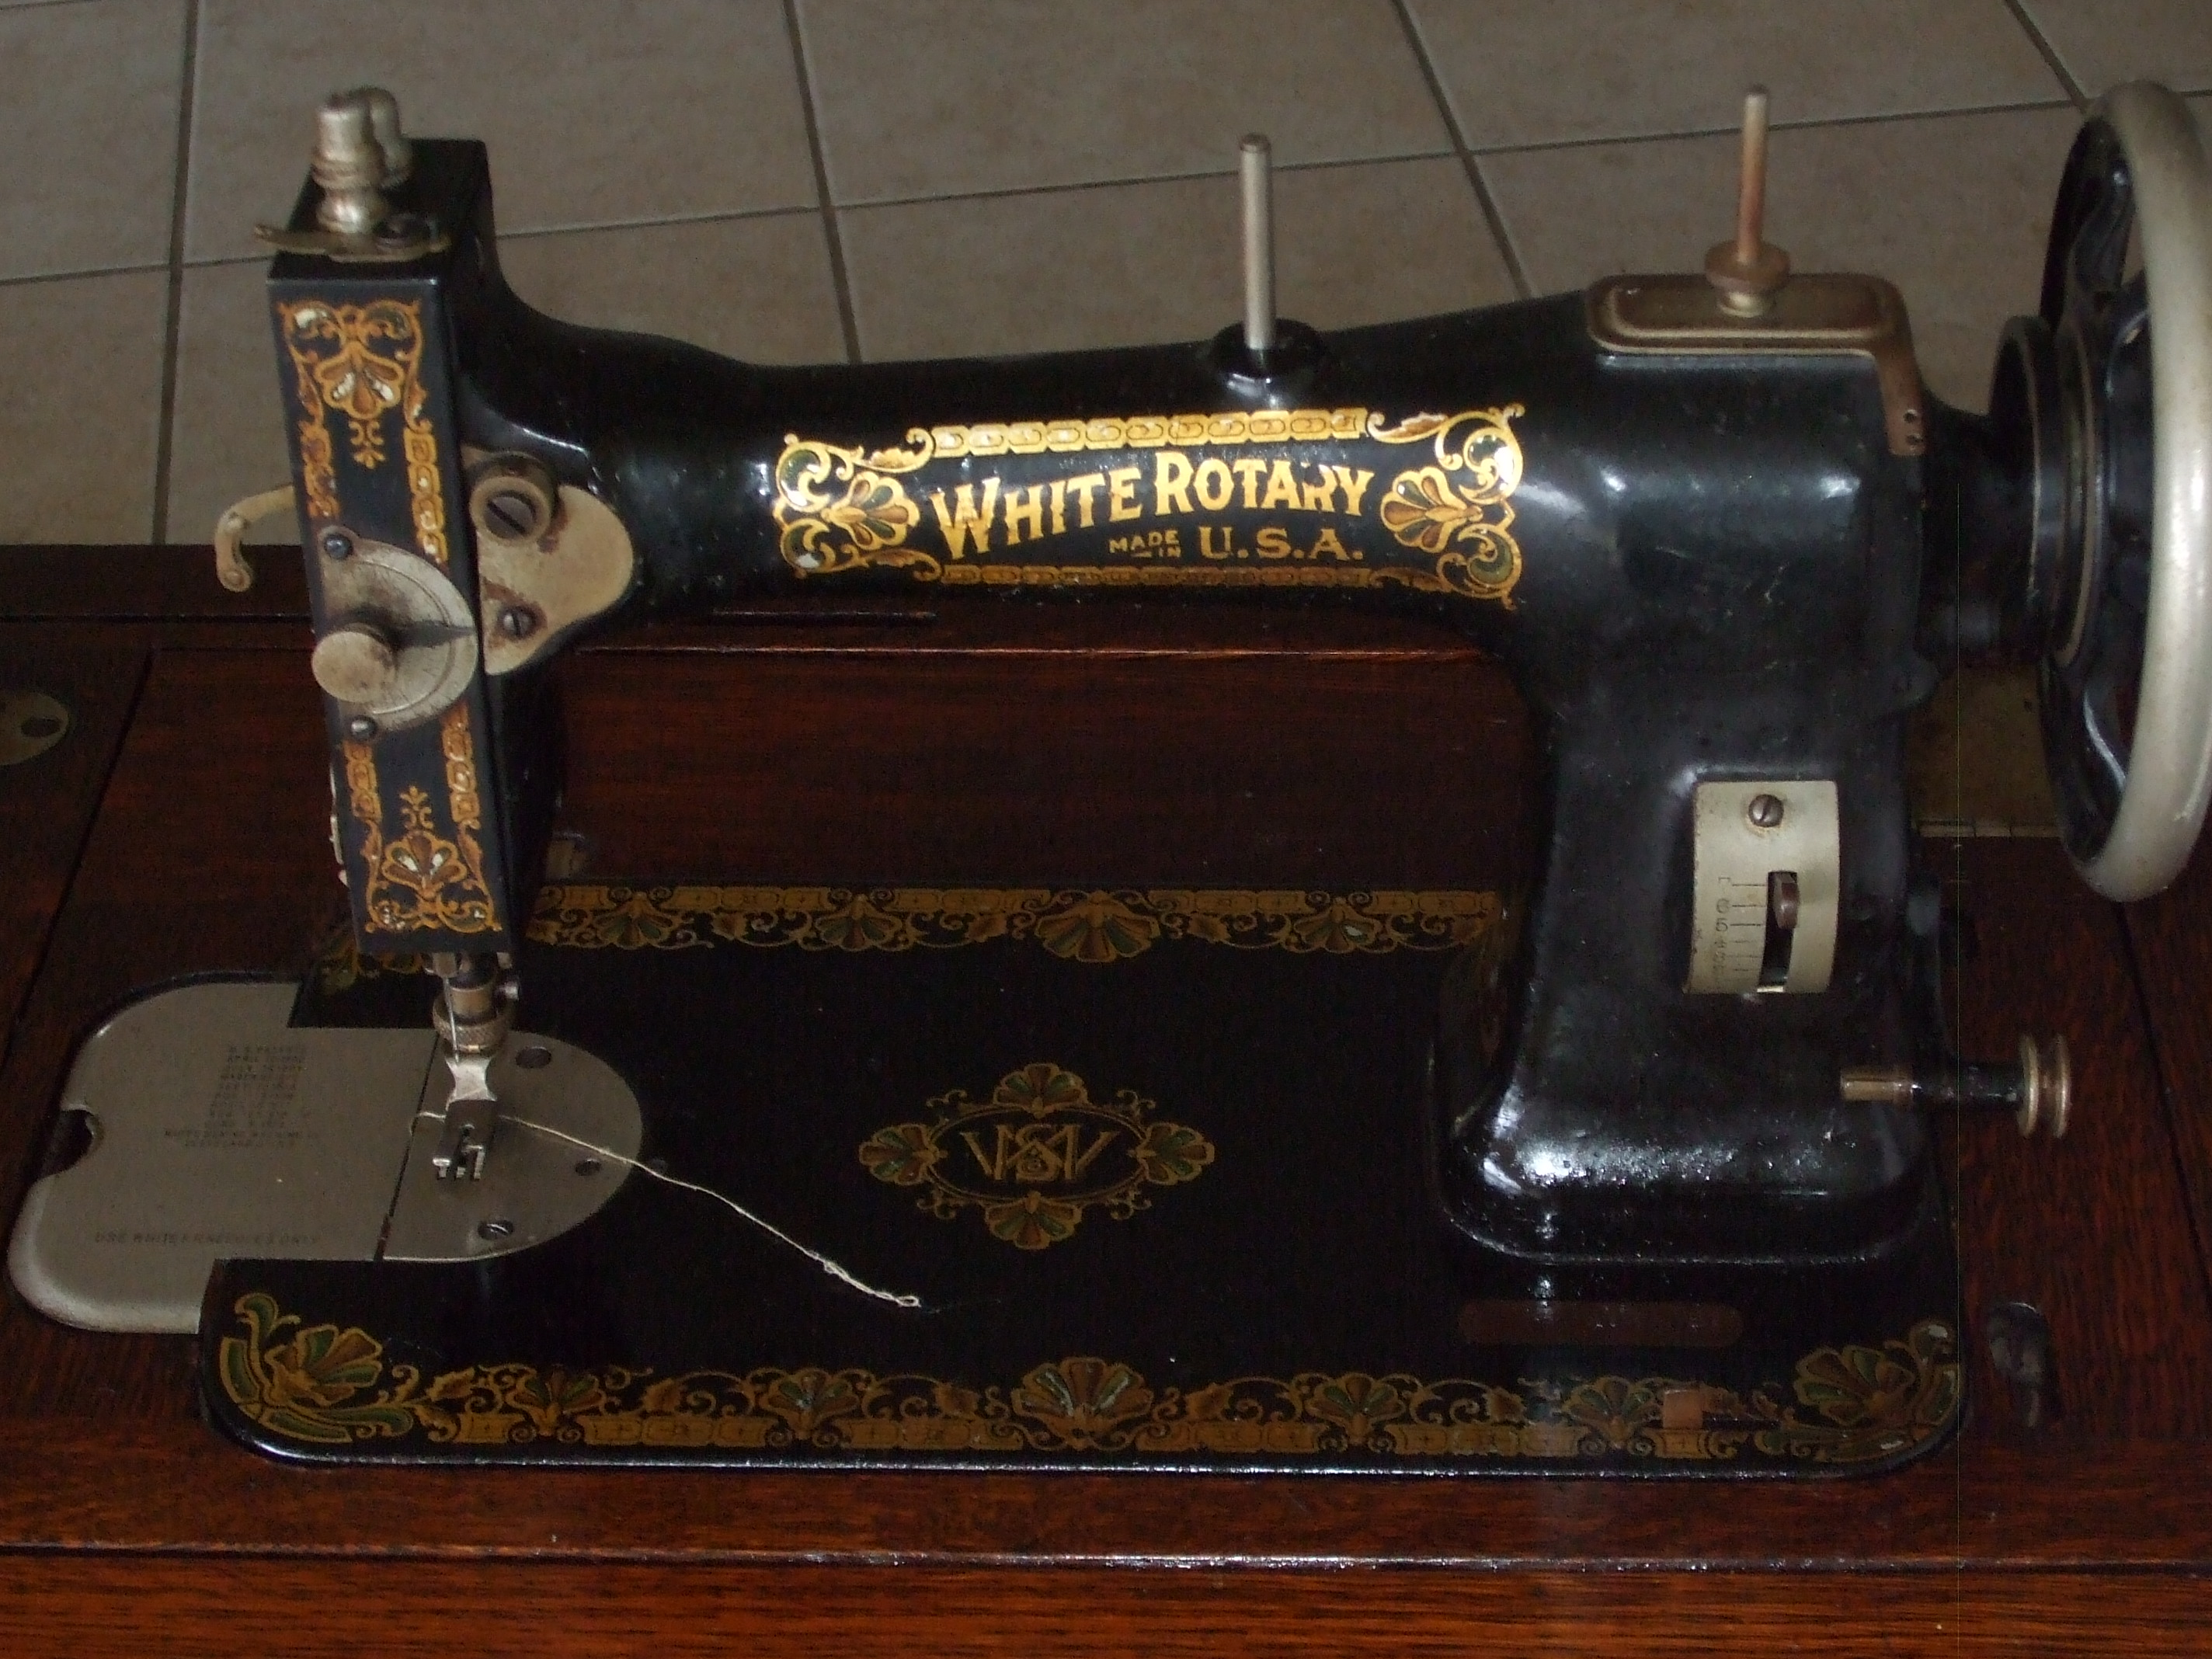 1920s White Rotary Treddle Sewing Machine In Wooden